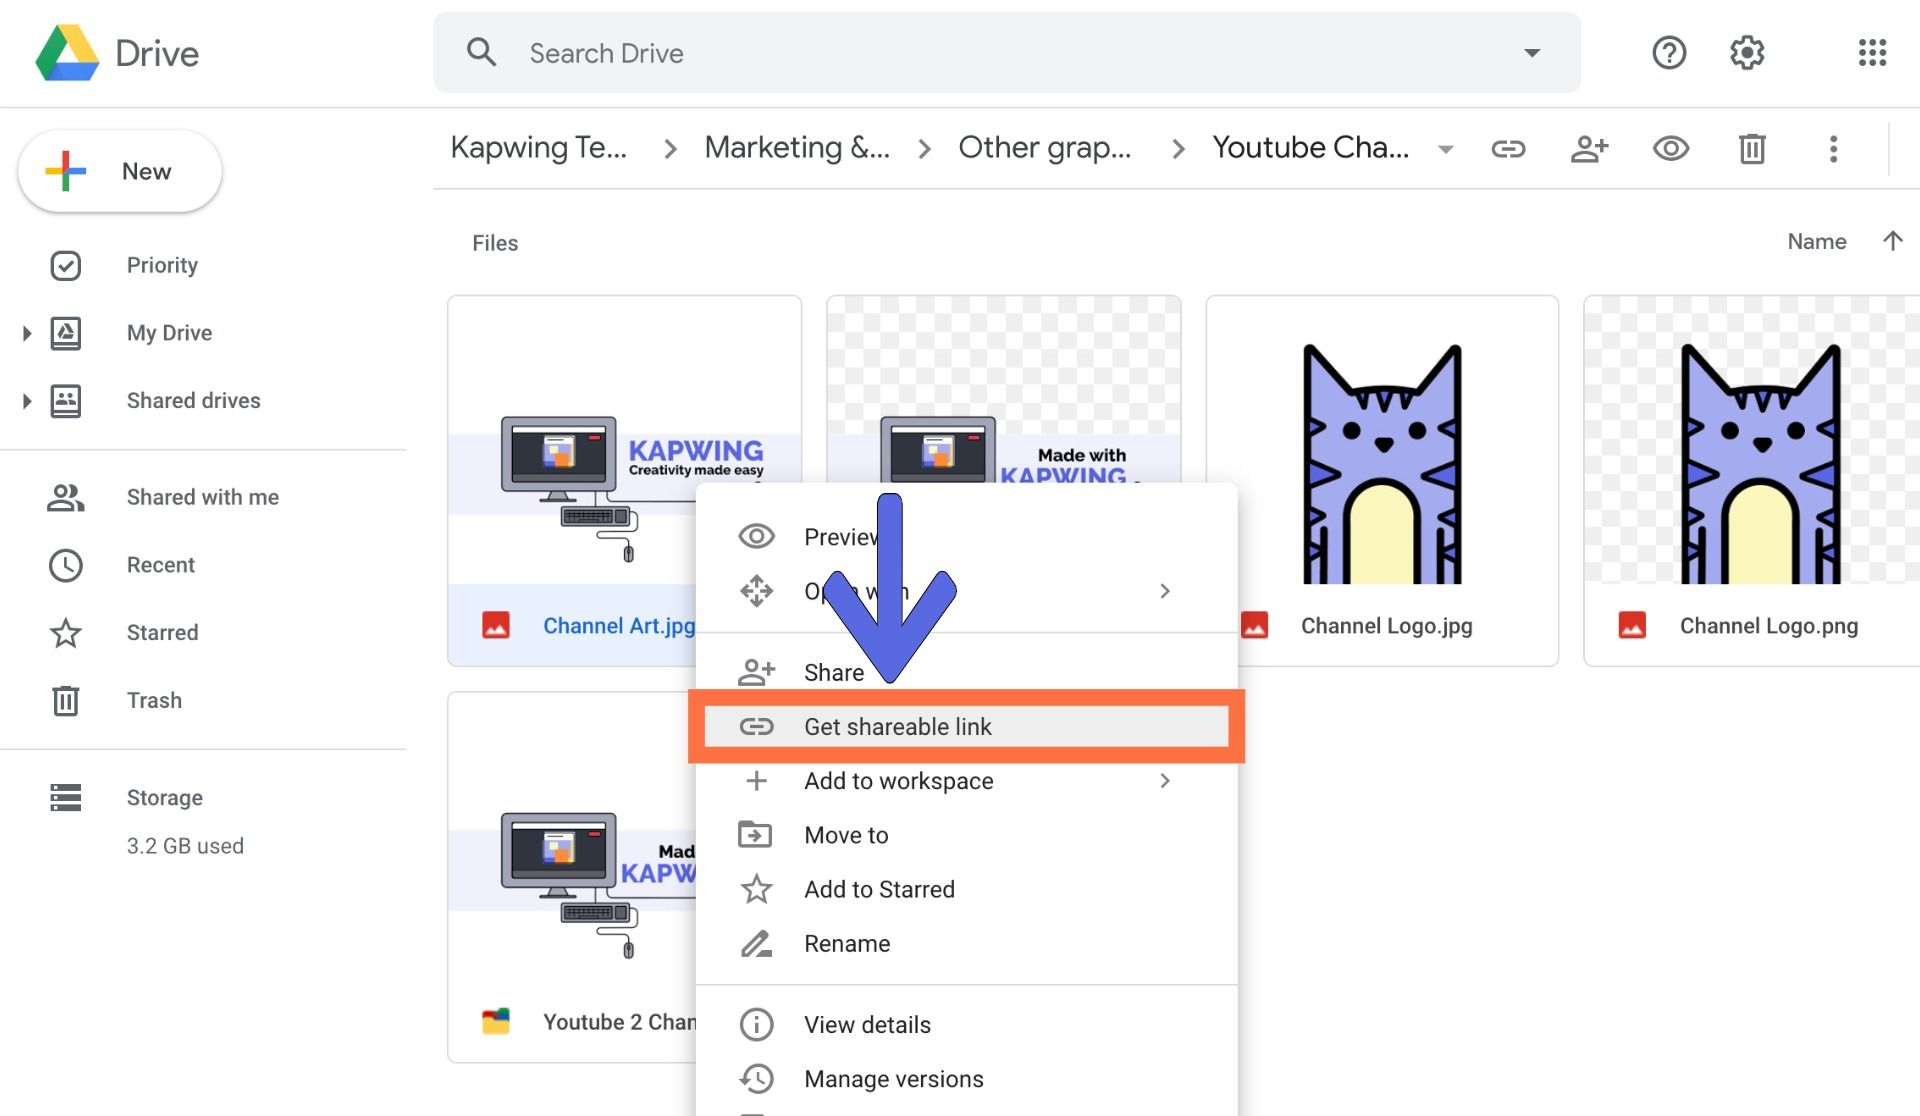 A screenshot showing how to download images from Google Drive.